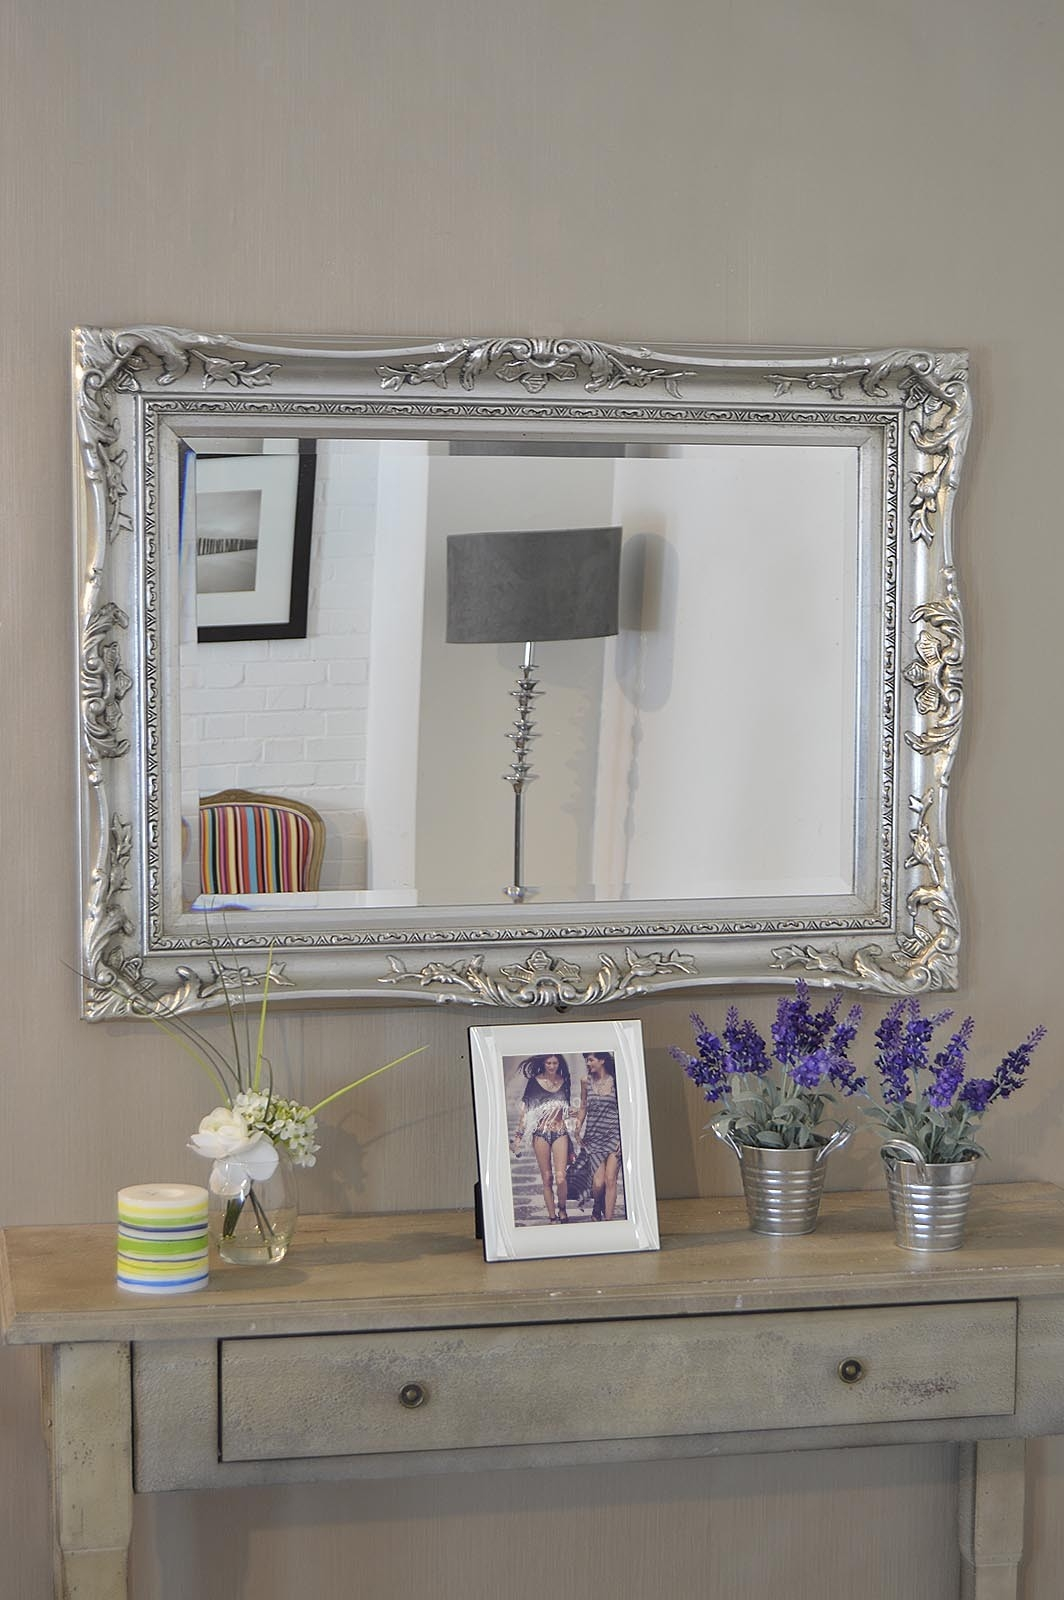 3ft2 X 2ft4 97x71cm Large Silver Ornate Antique Style Big Wall With Ornate Large Mirror (Image 1 of 15)